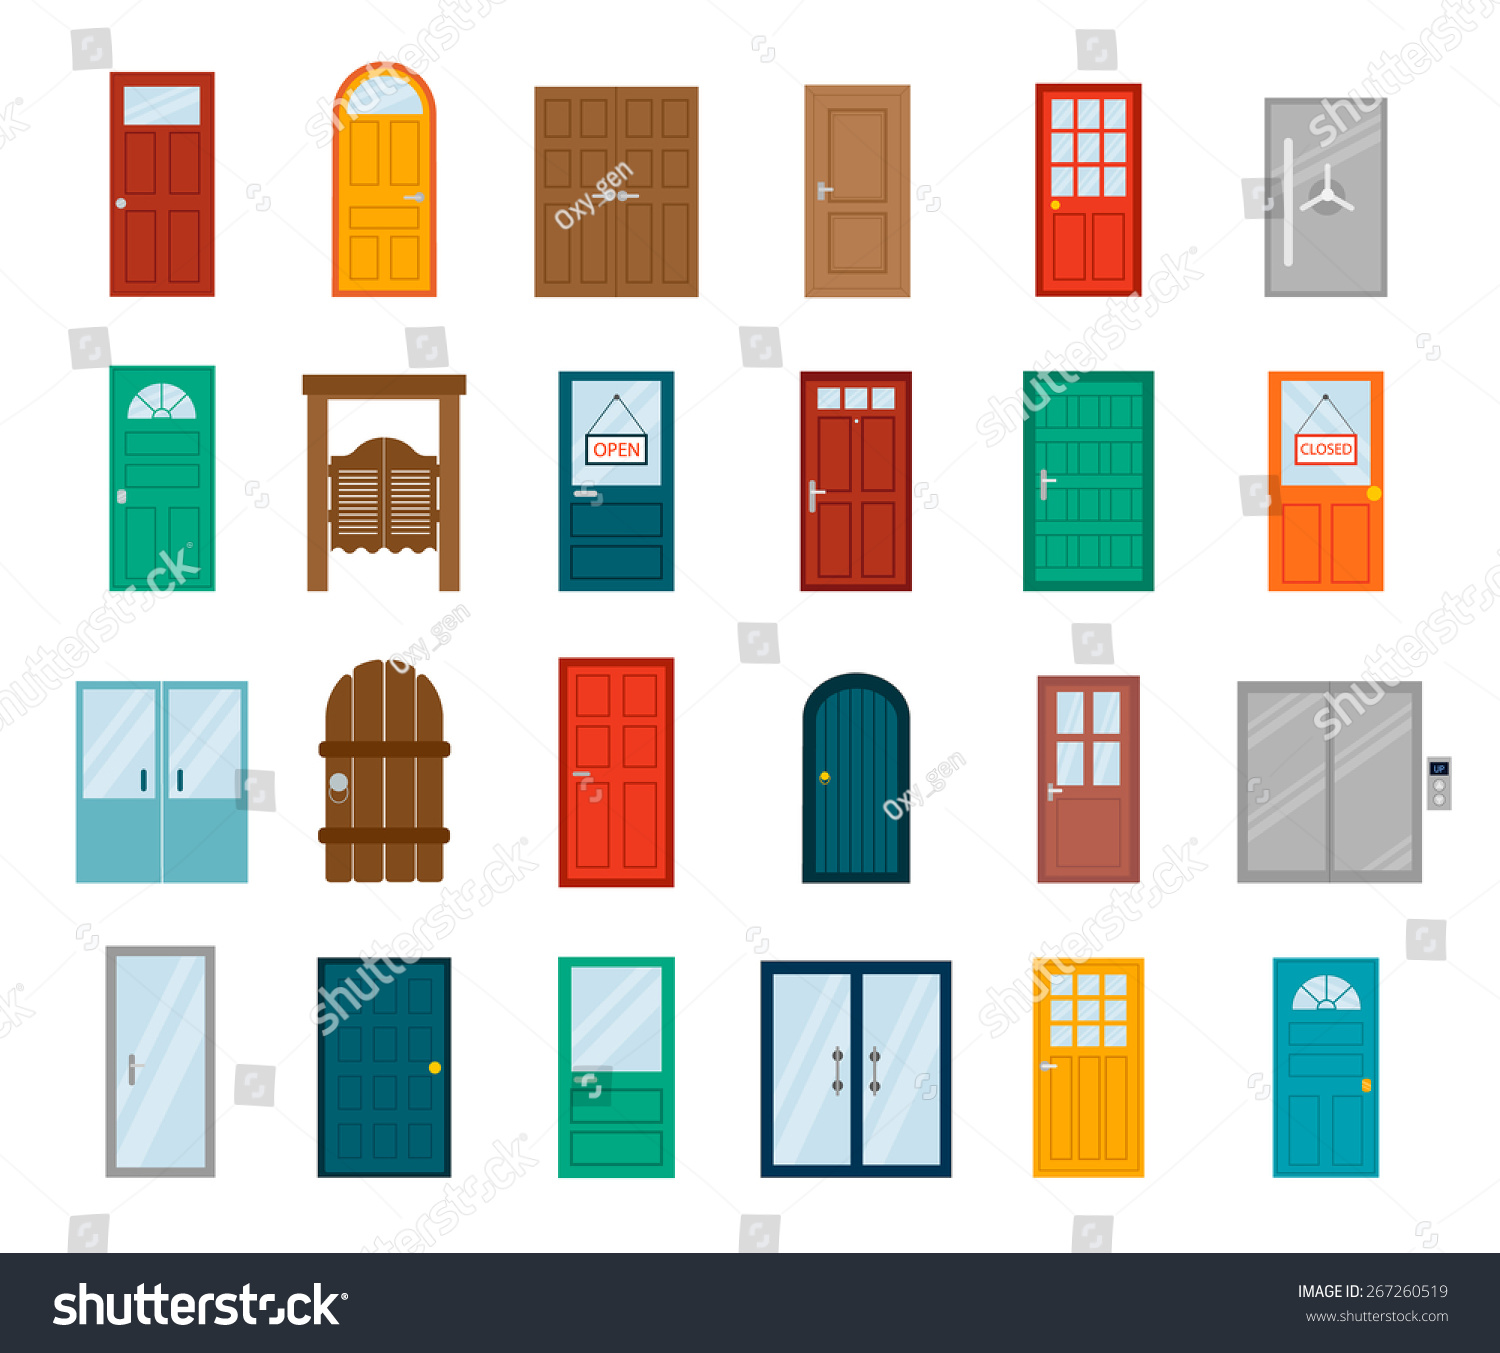 Style of doors for houses